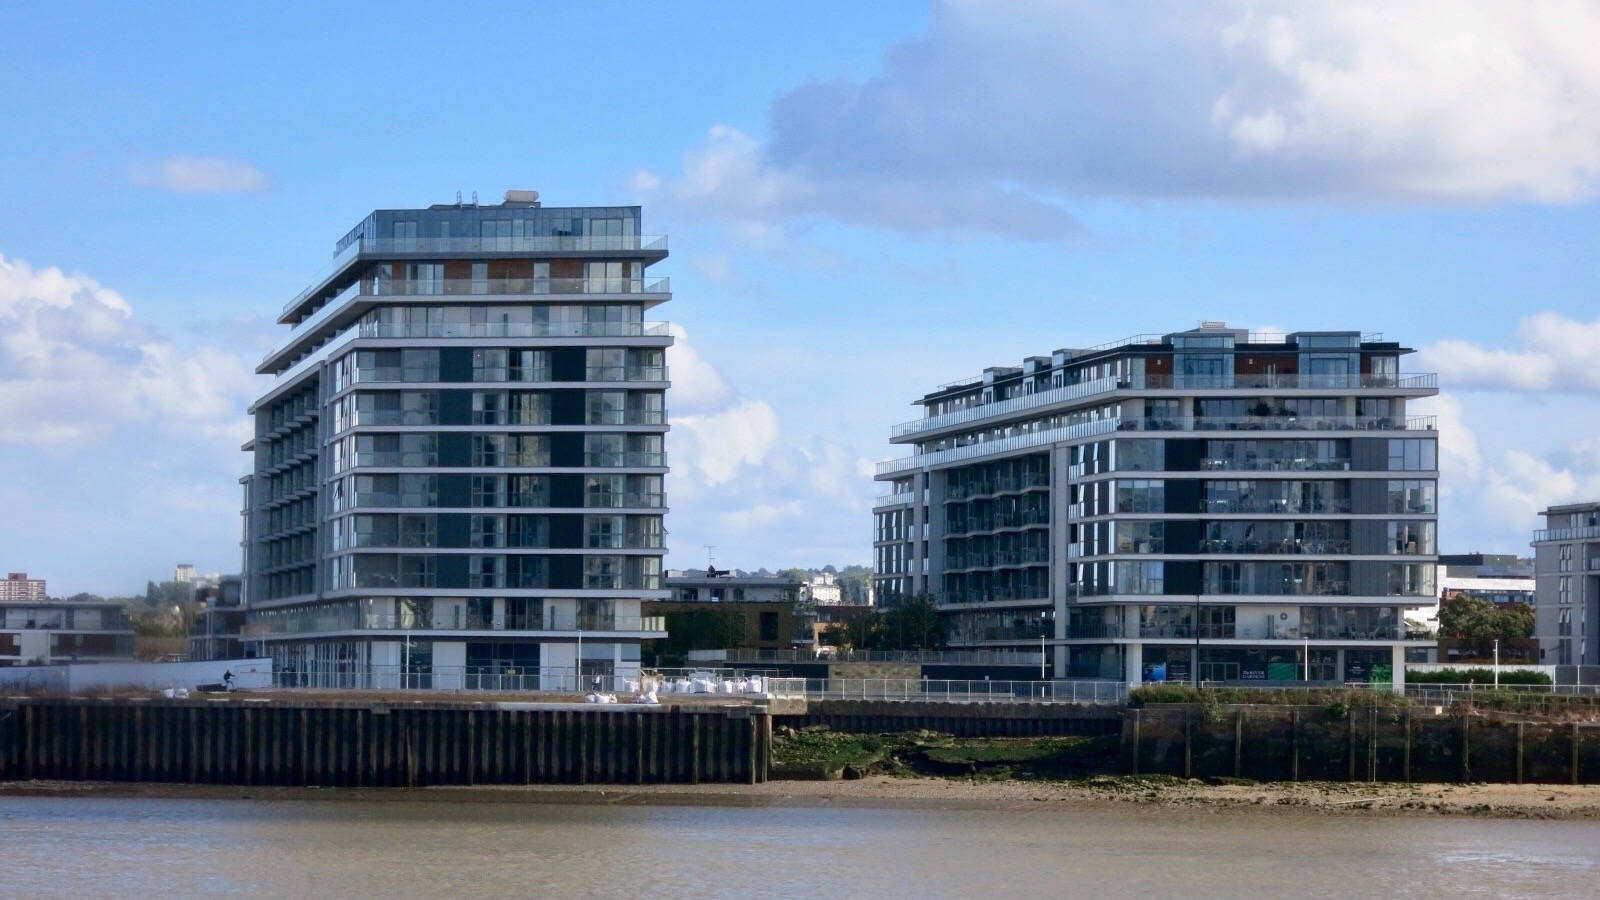 Barrett Home's Enderby Wharf and The River Gardens development at Lovell's Wharf.